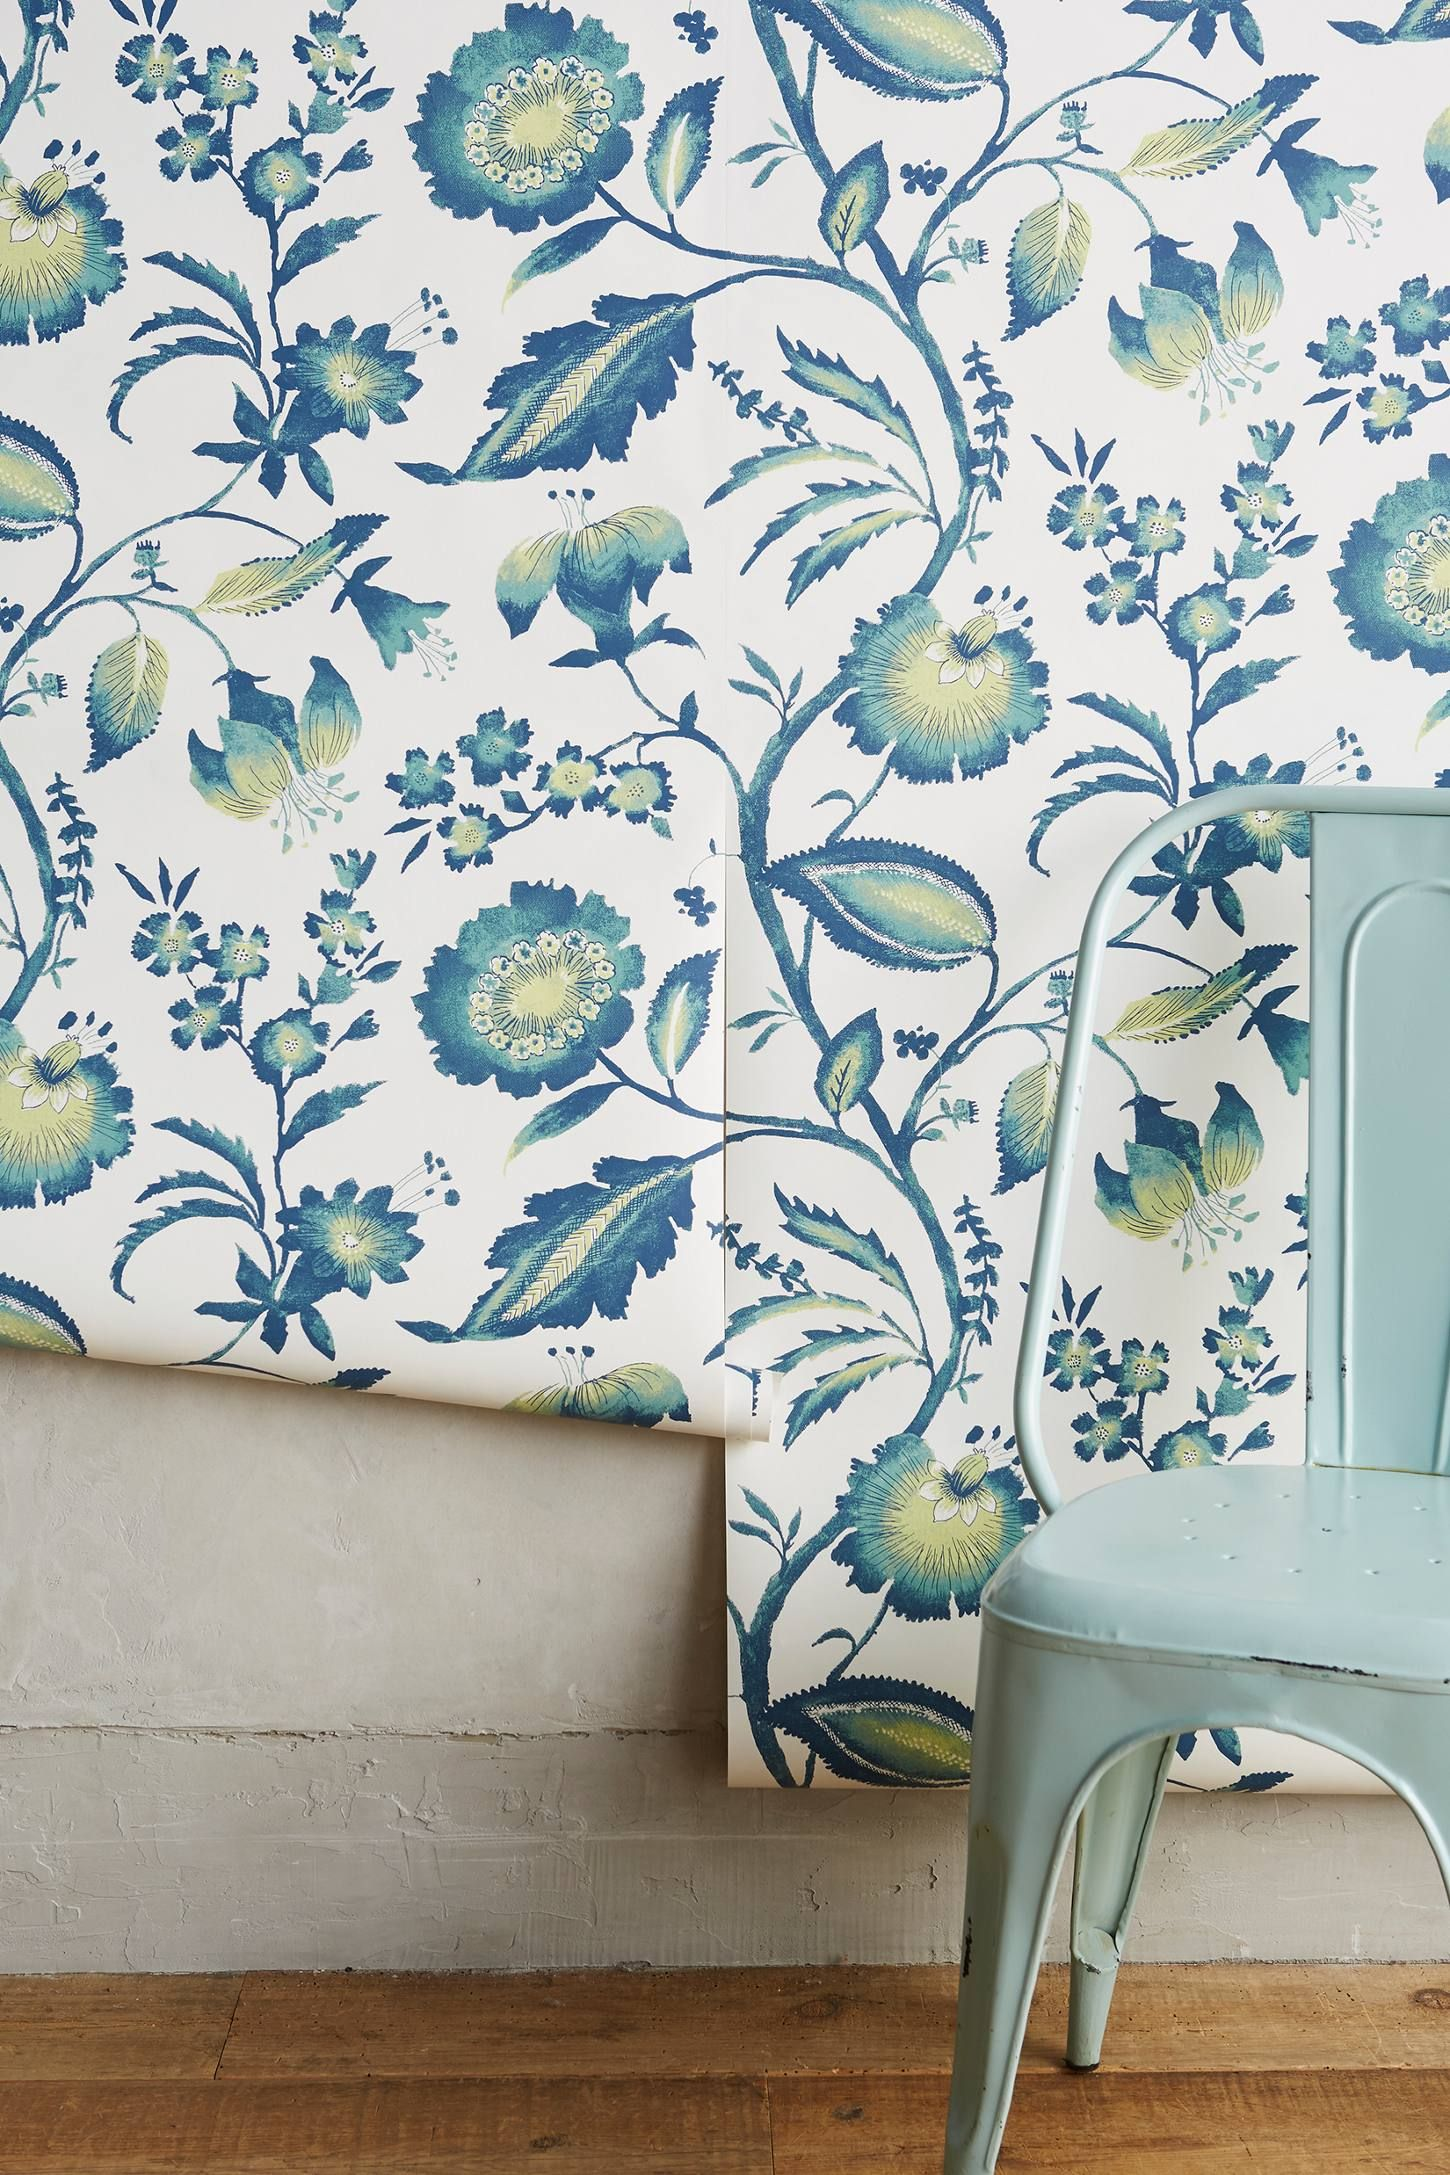 Shop the Jacobean Floral Wallpaper and more Anthropologie